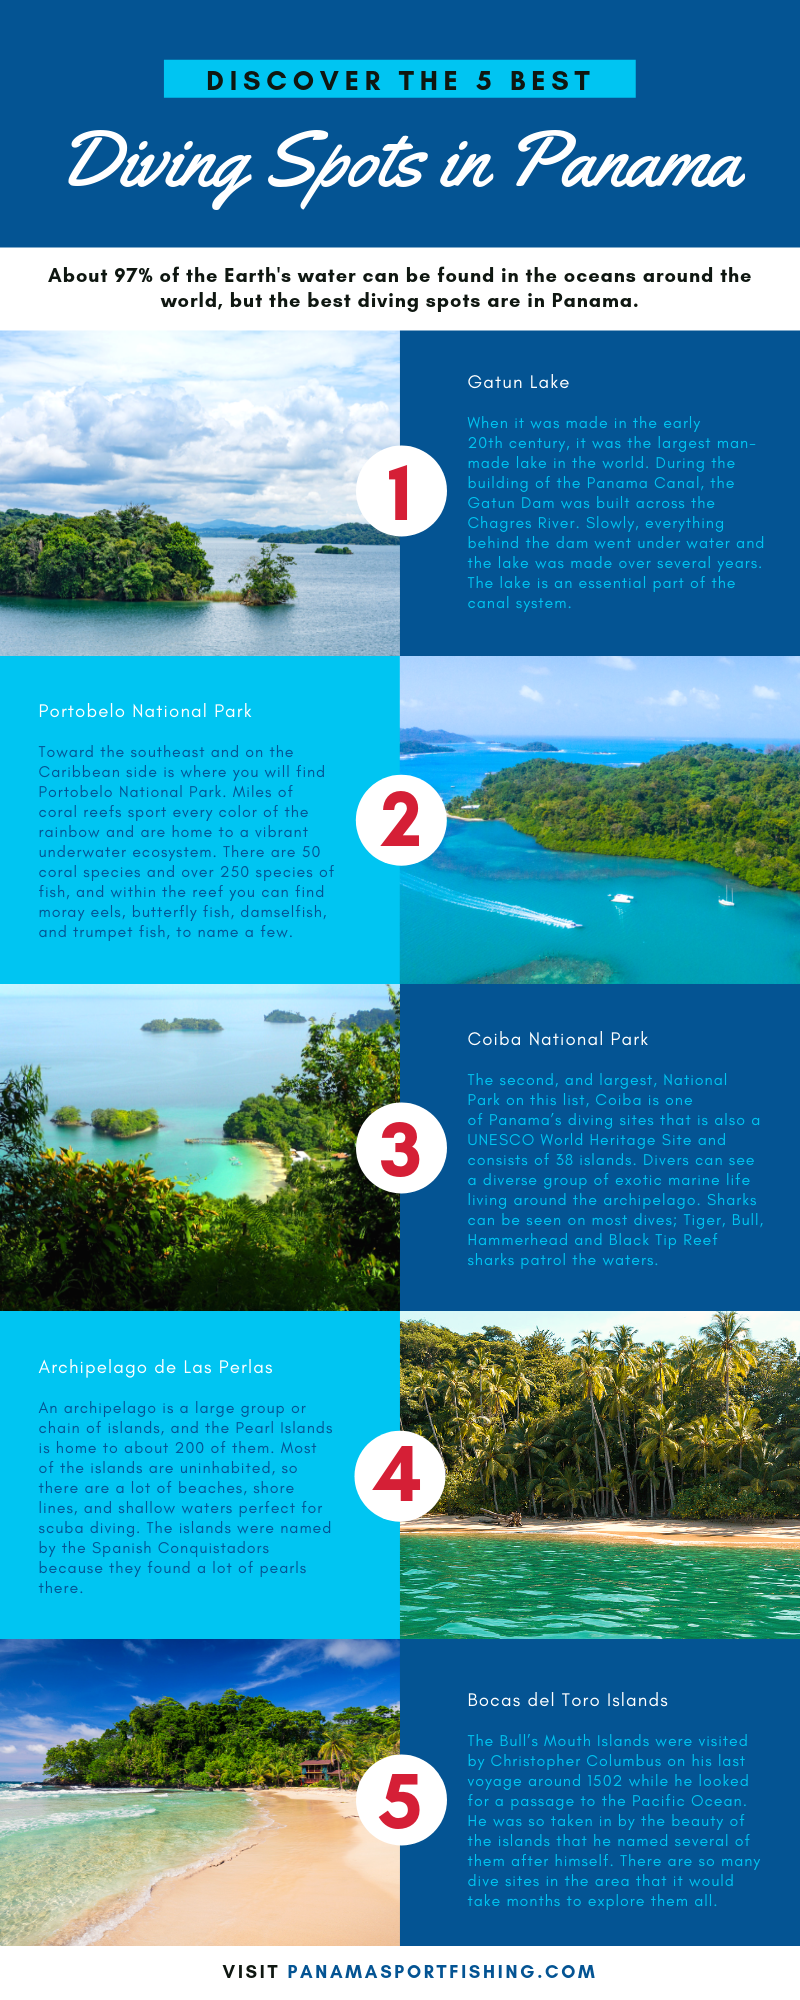 Discover the 5 Best Diving Spots in Panama infographic